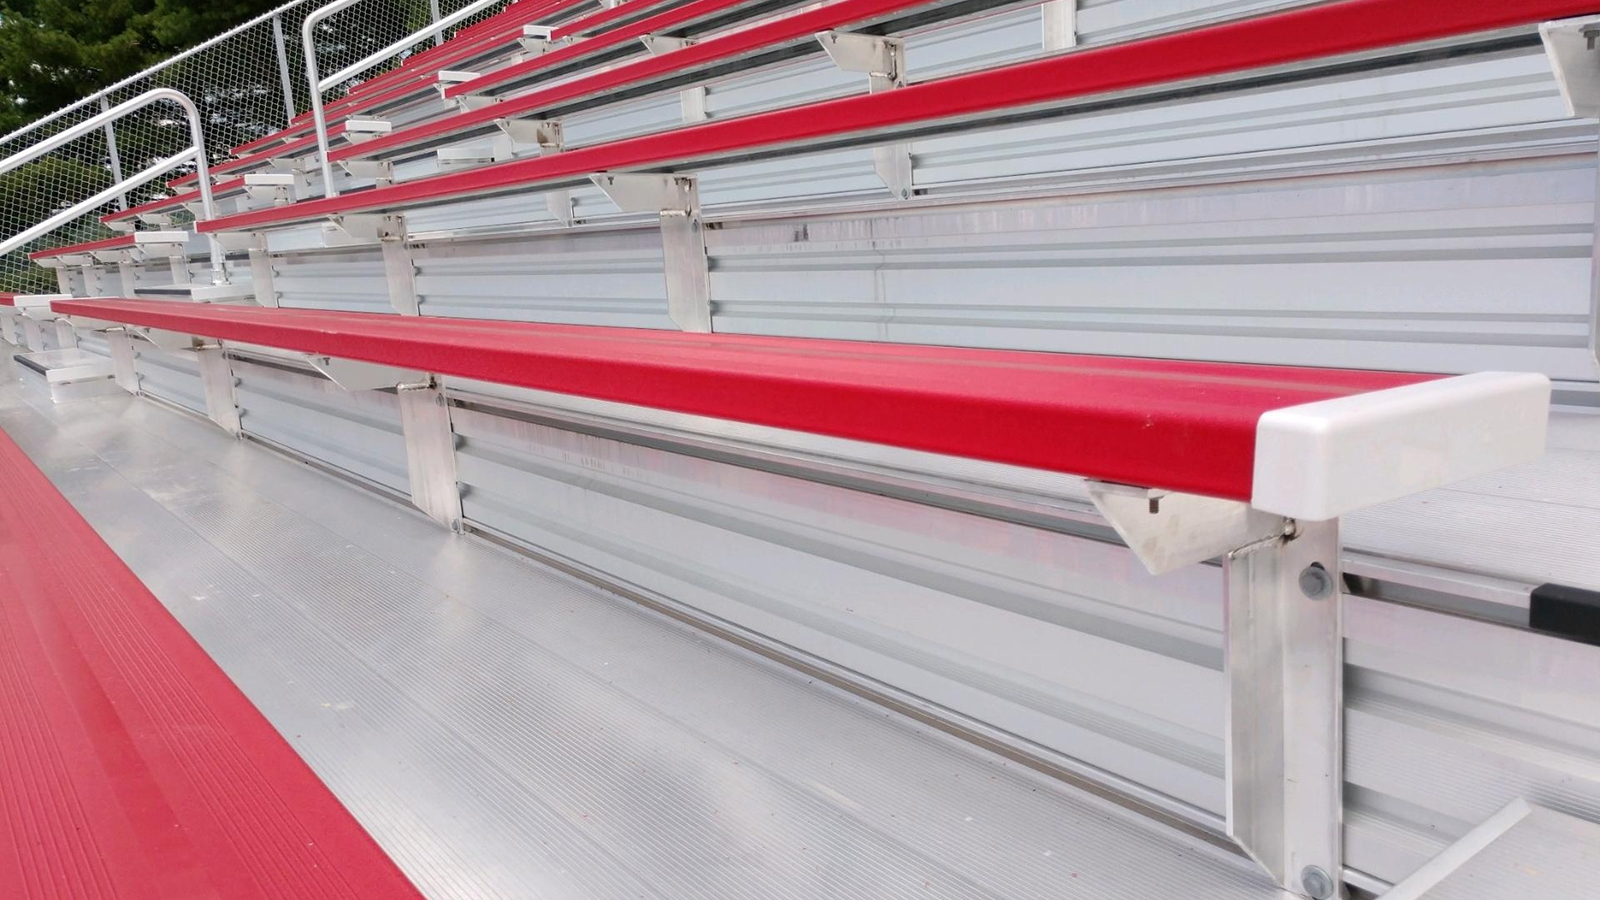 Football aluminum bleachers